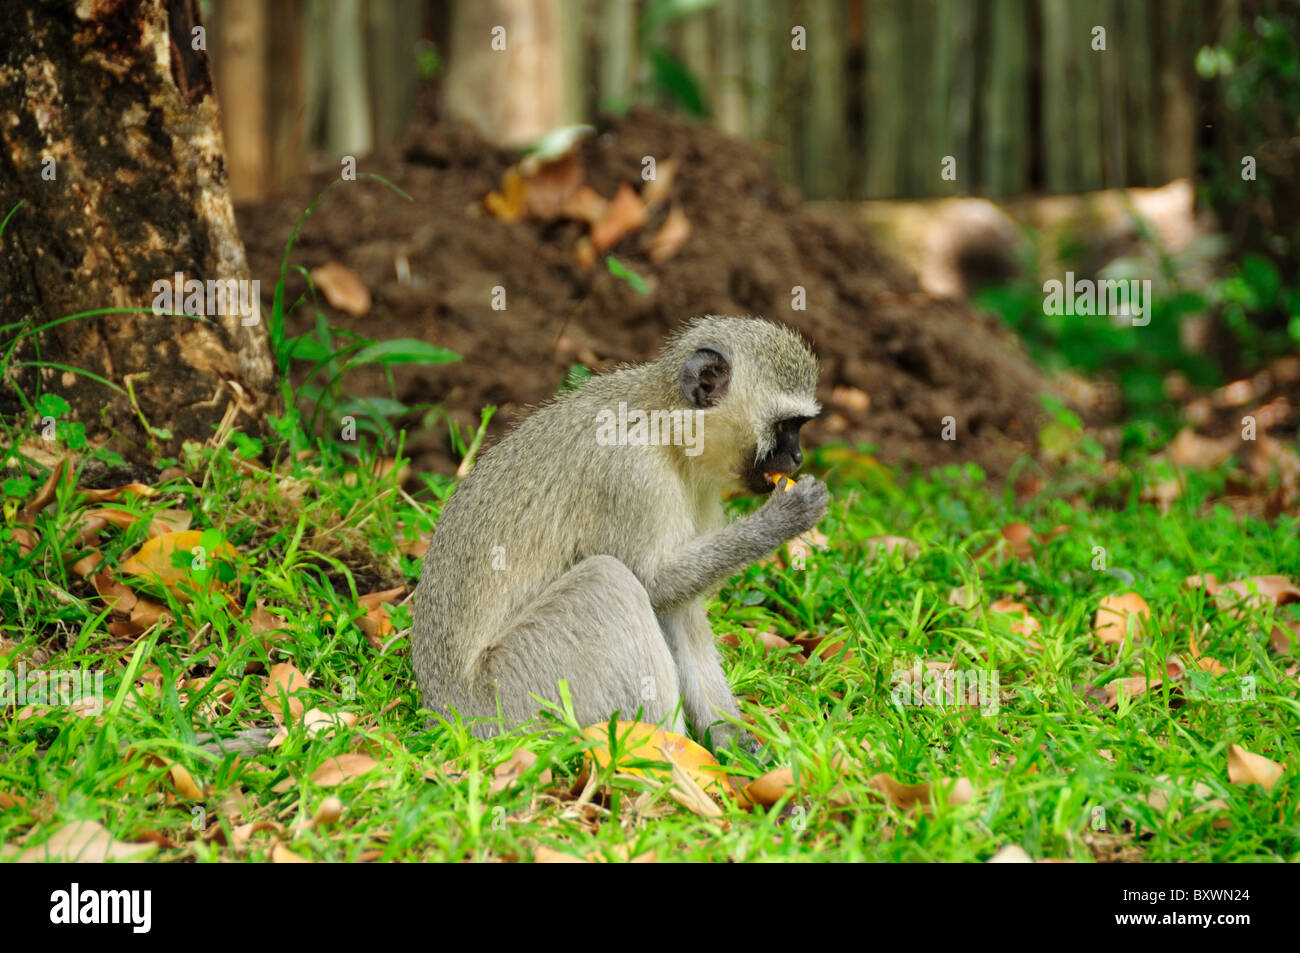 A Vervet monkey search for food. South Africa. Kruger National Park, South Africa. - Stock Image